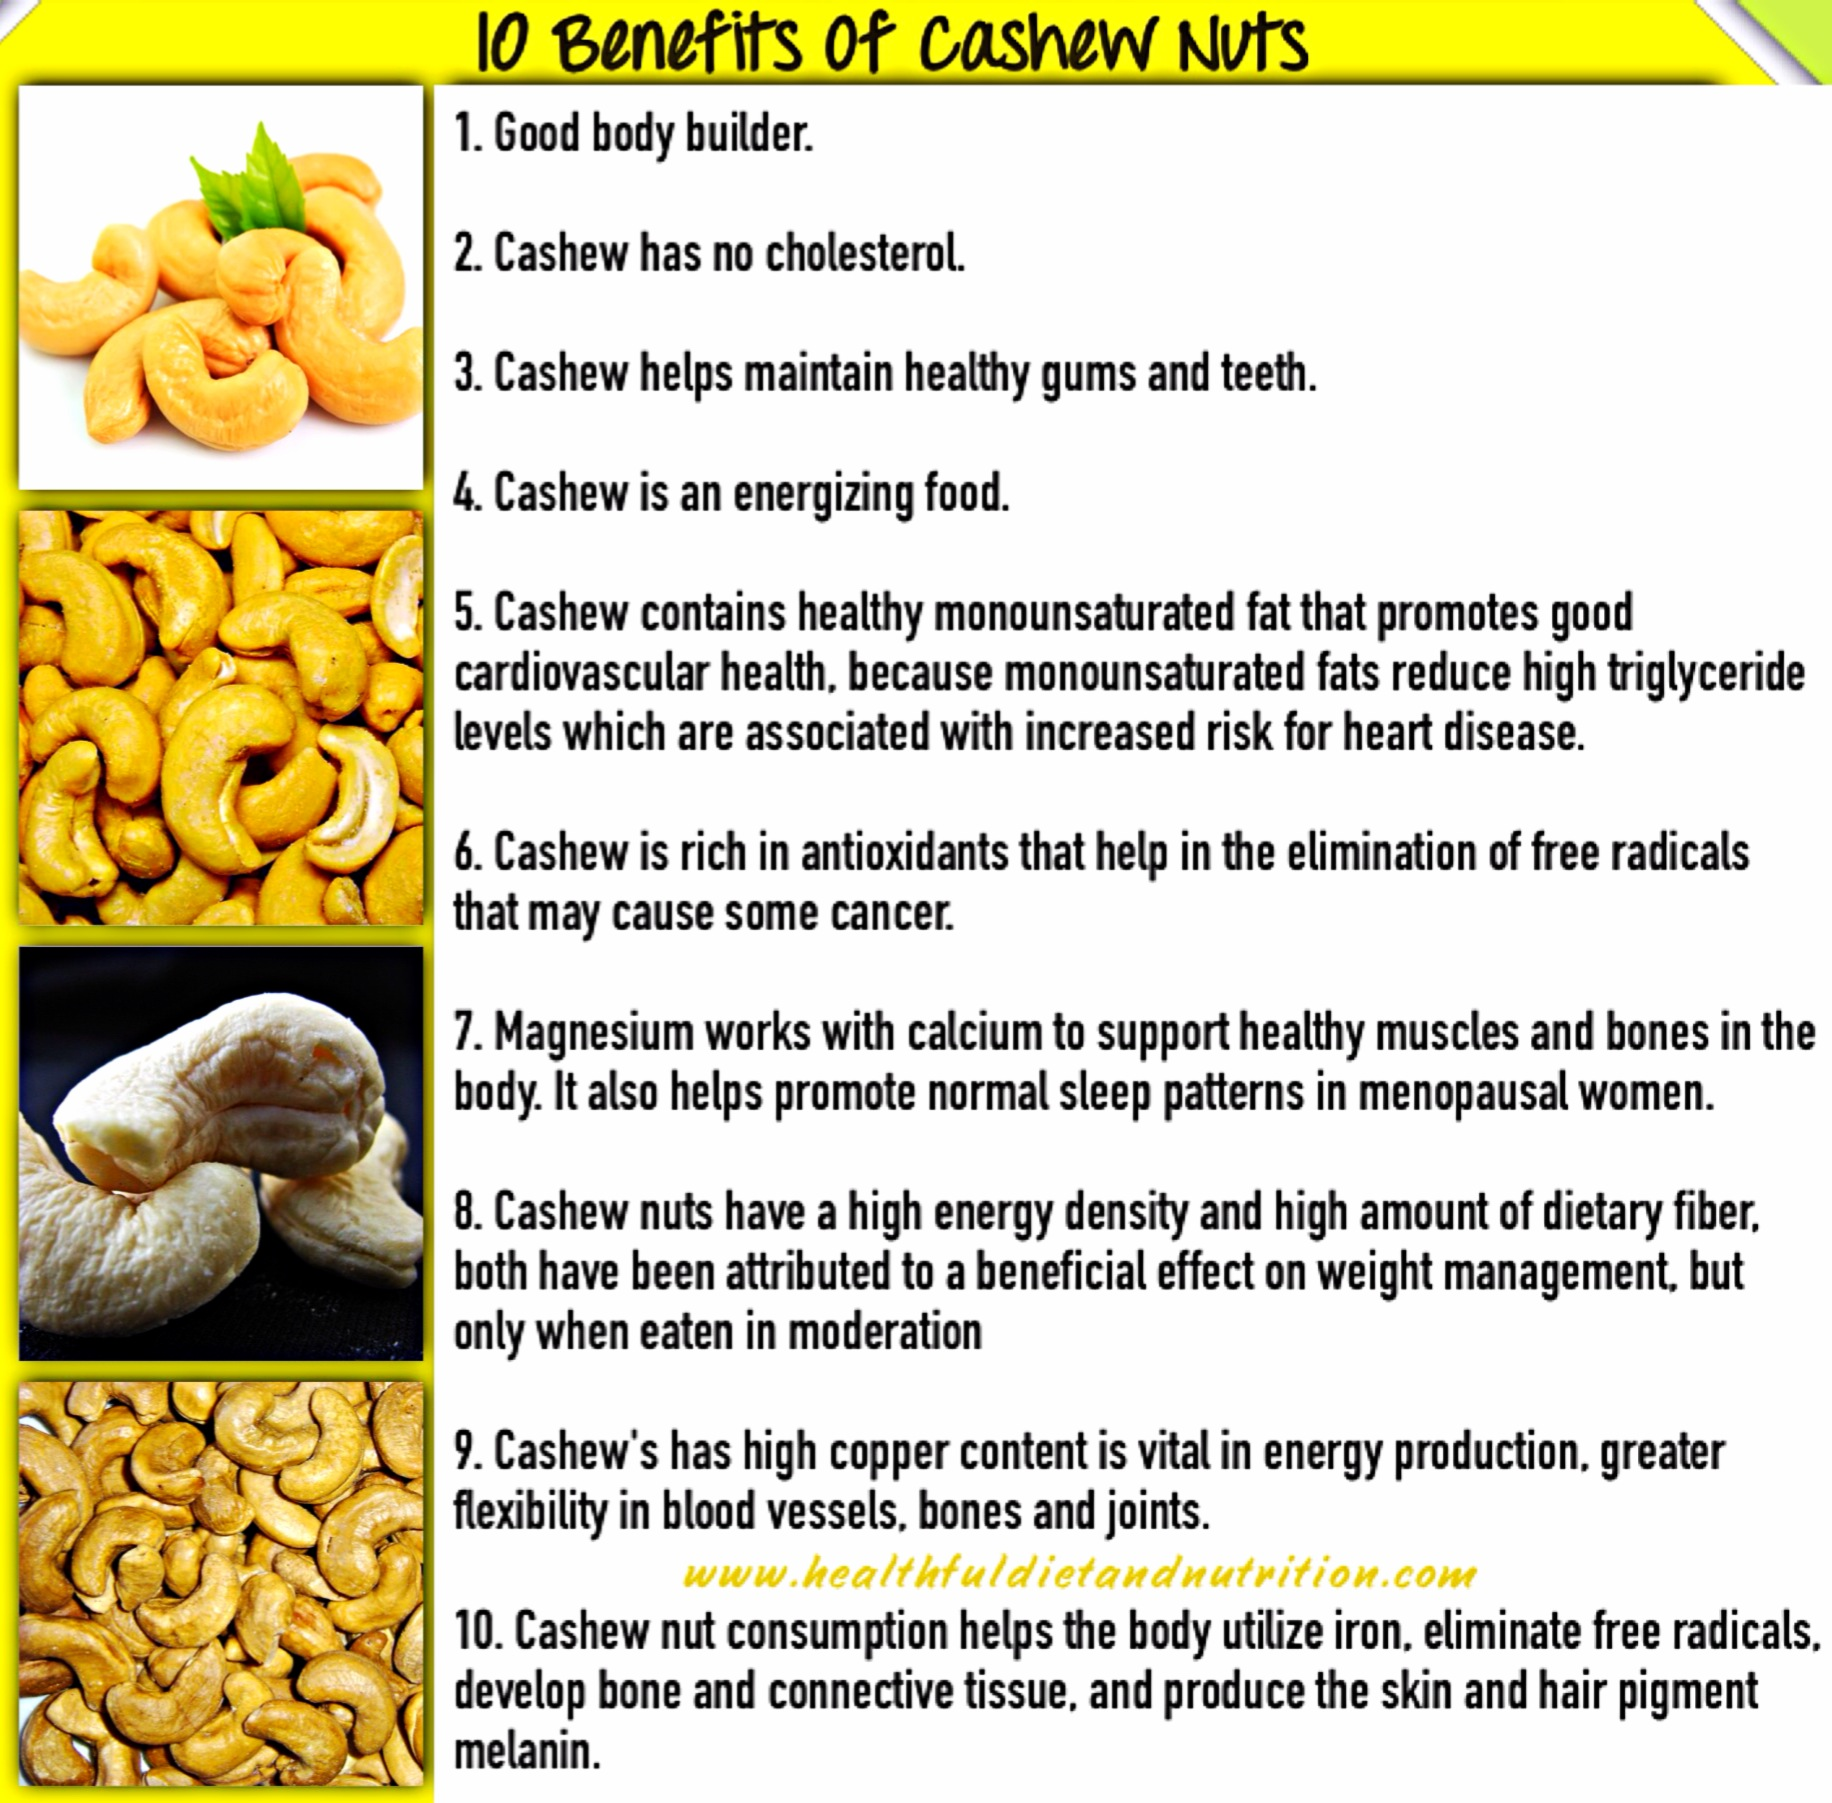 10 Benefits of Cashew Nuts